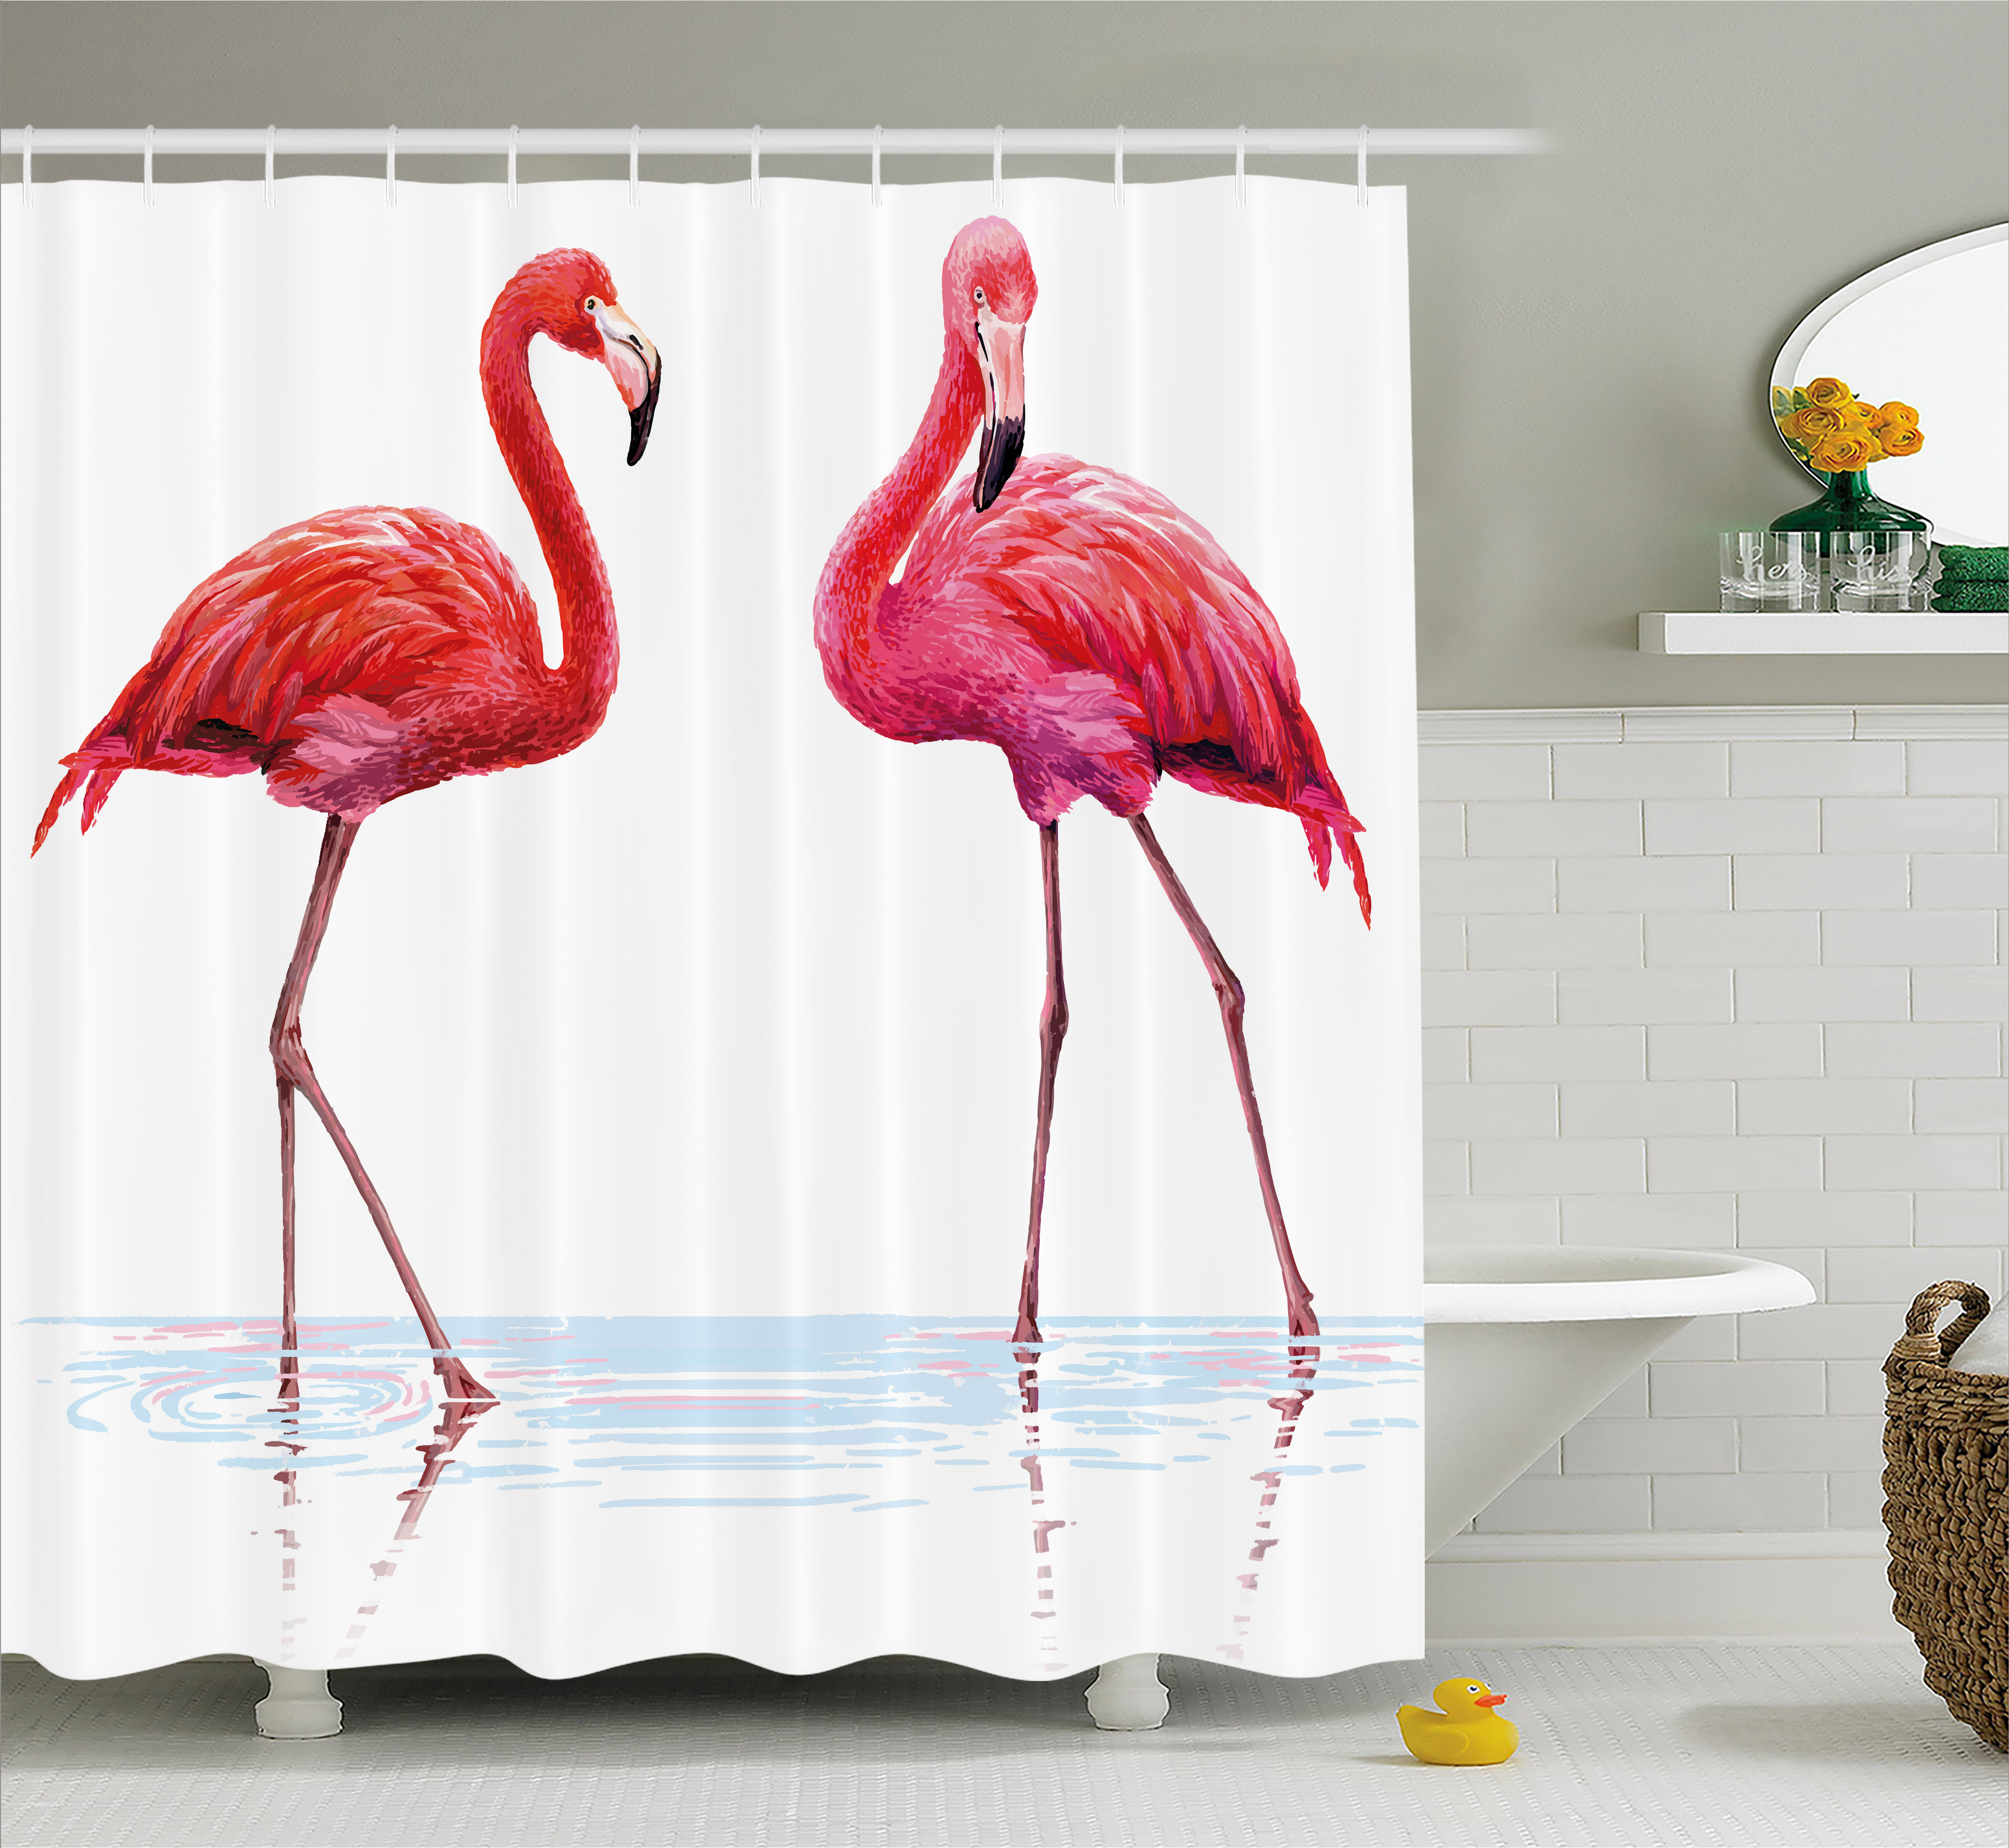 Animal Shower Curtain, Two Hand Drawn Flamingos in Pink Colors on Seaside Tropical Exotic Wildlife Artwork, Fabric Bathroom Set with Hooks, 69W X 84L Inches Extra Long, Red Pink, by Ambesonne